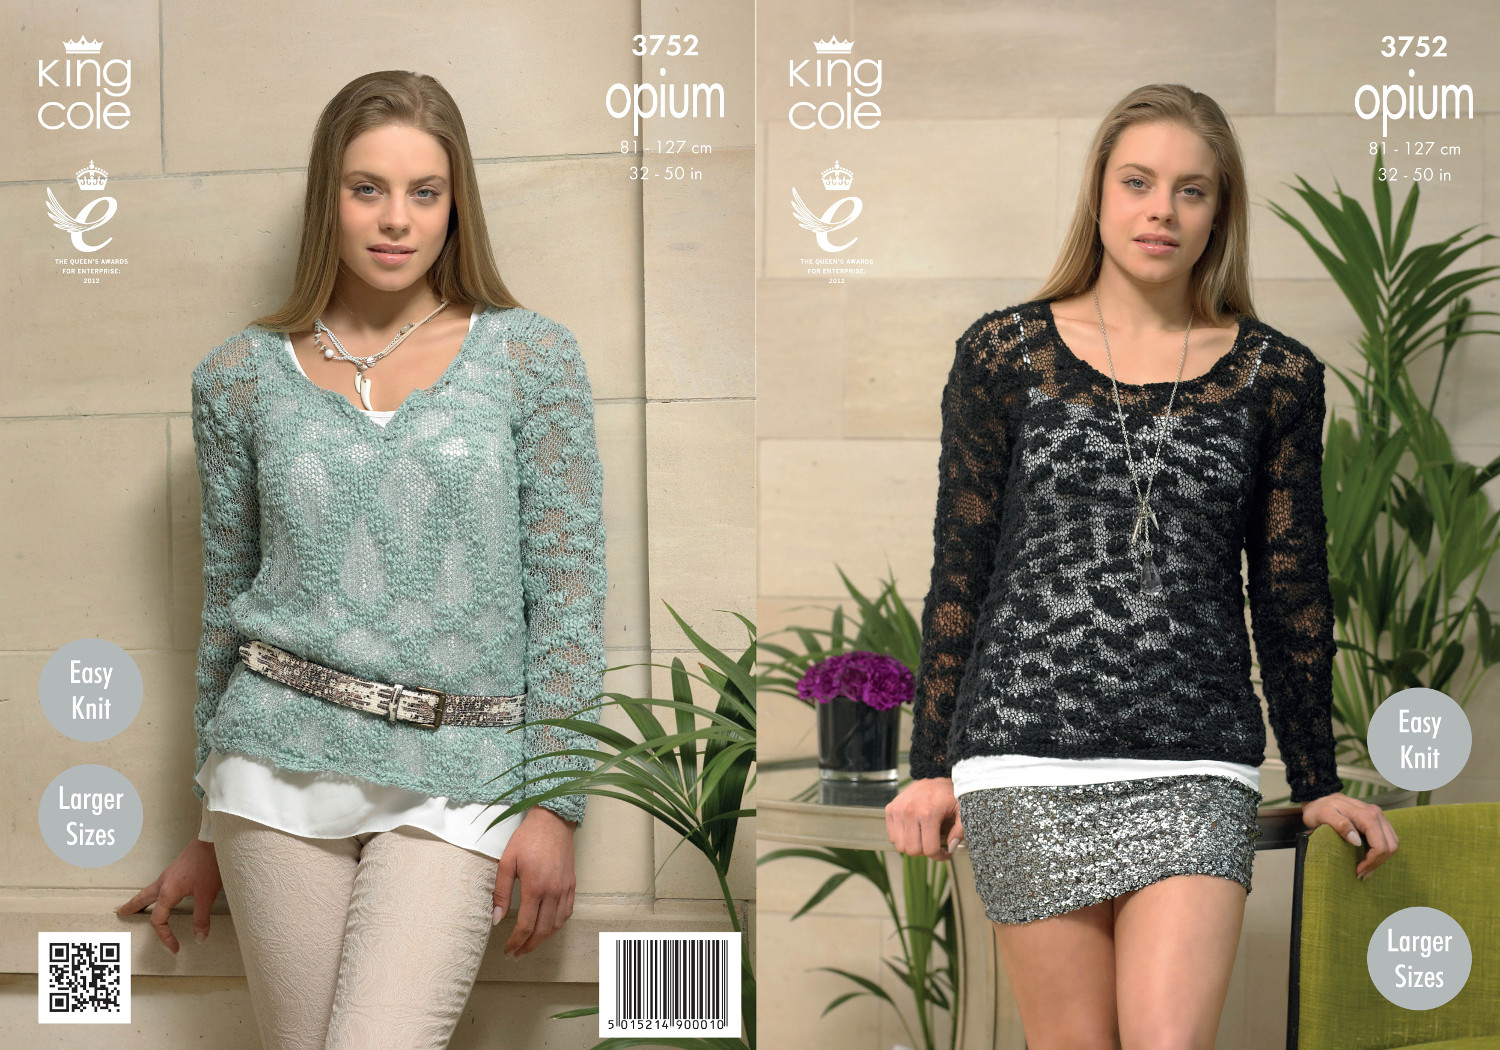 King cole womens knitting pattern ladies opium round v neck king cole womens knitting pattern ladies opium round v neck sweater jumper 3752 bankloansurffo Image collections